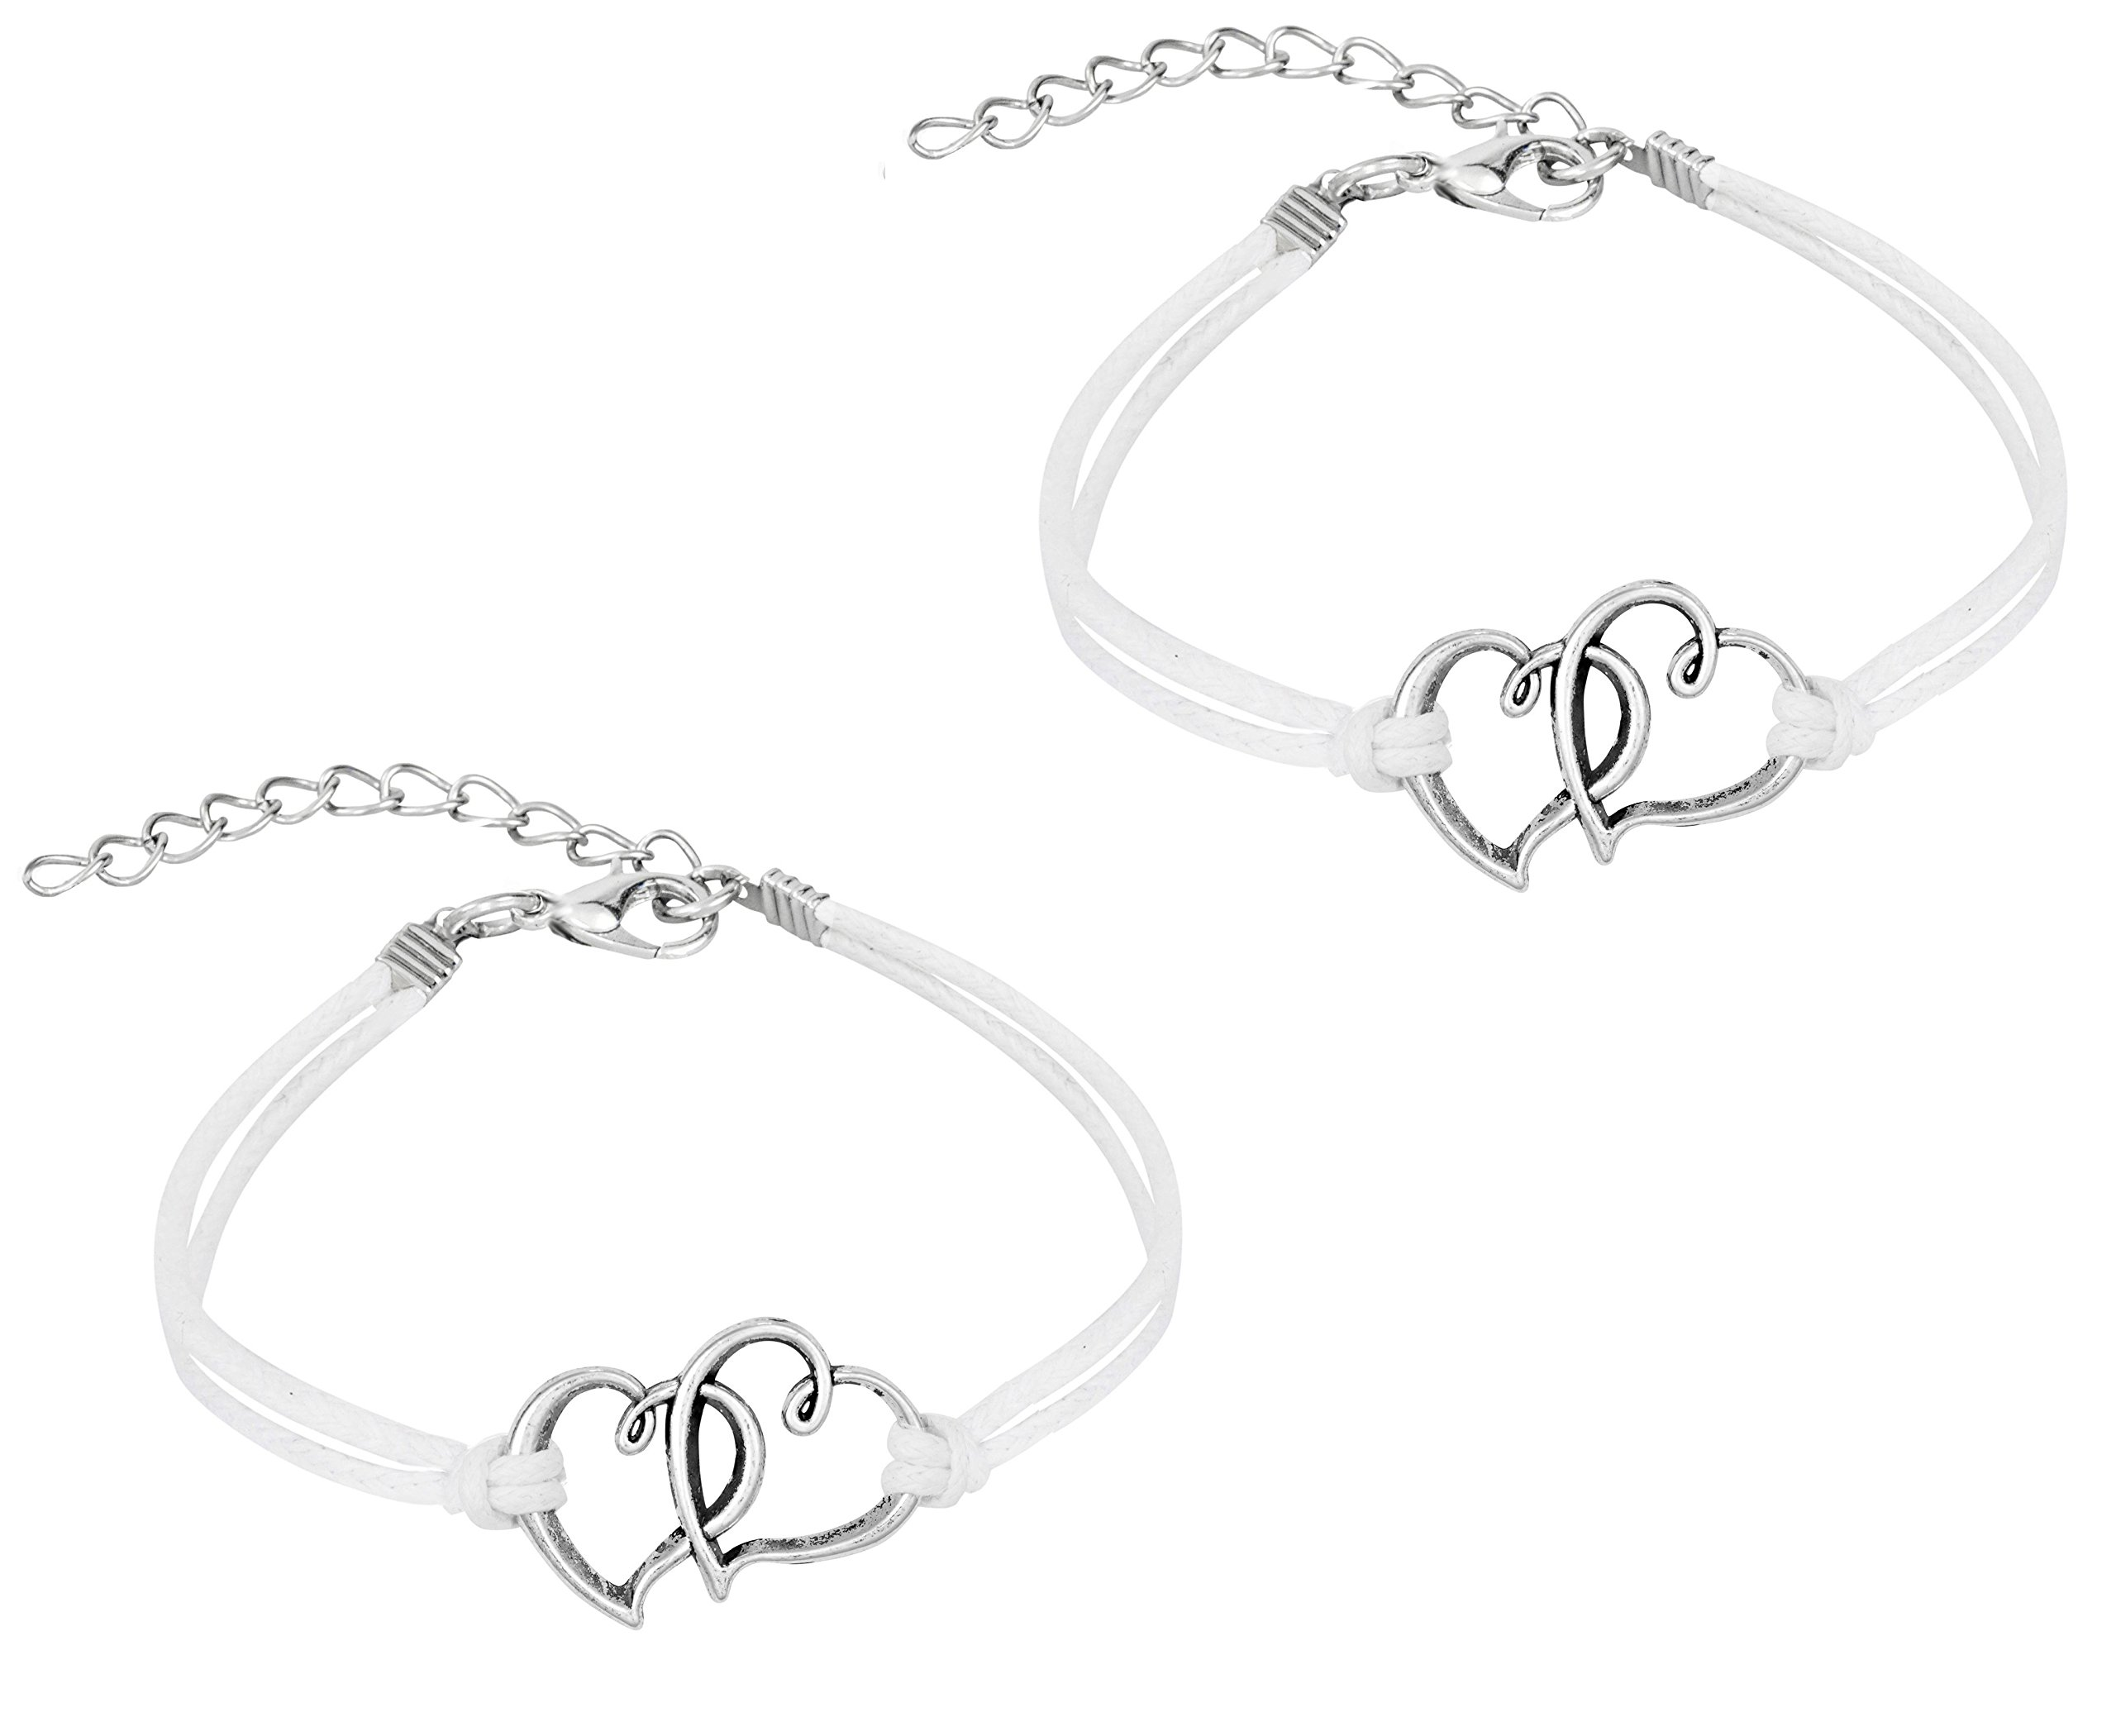 Penny & Piper Set of 2 Matching Friendship Bracelets for Kids with Soft Leatherette Cord